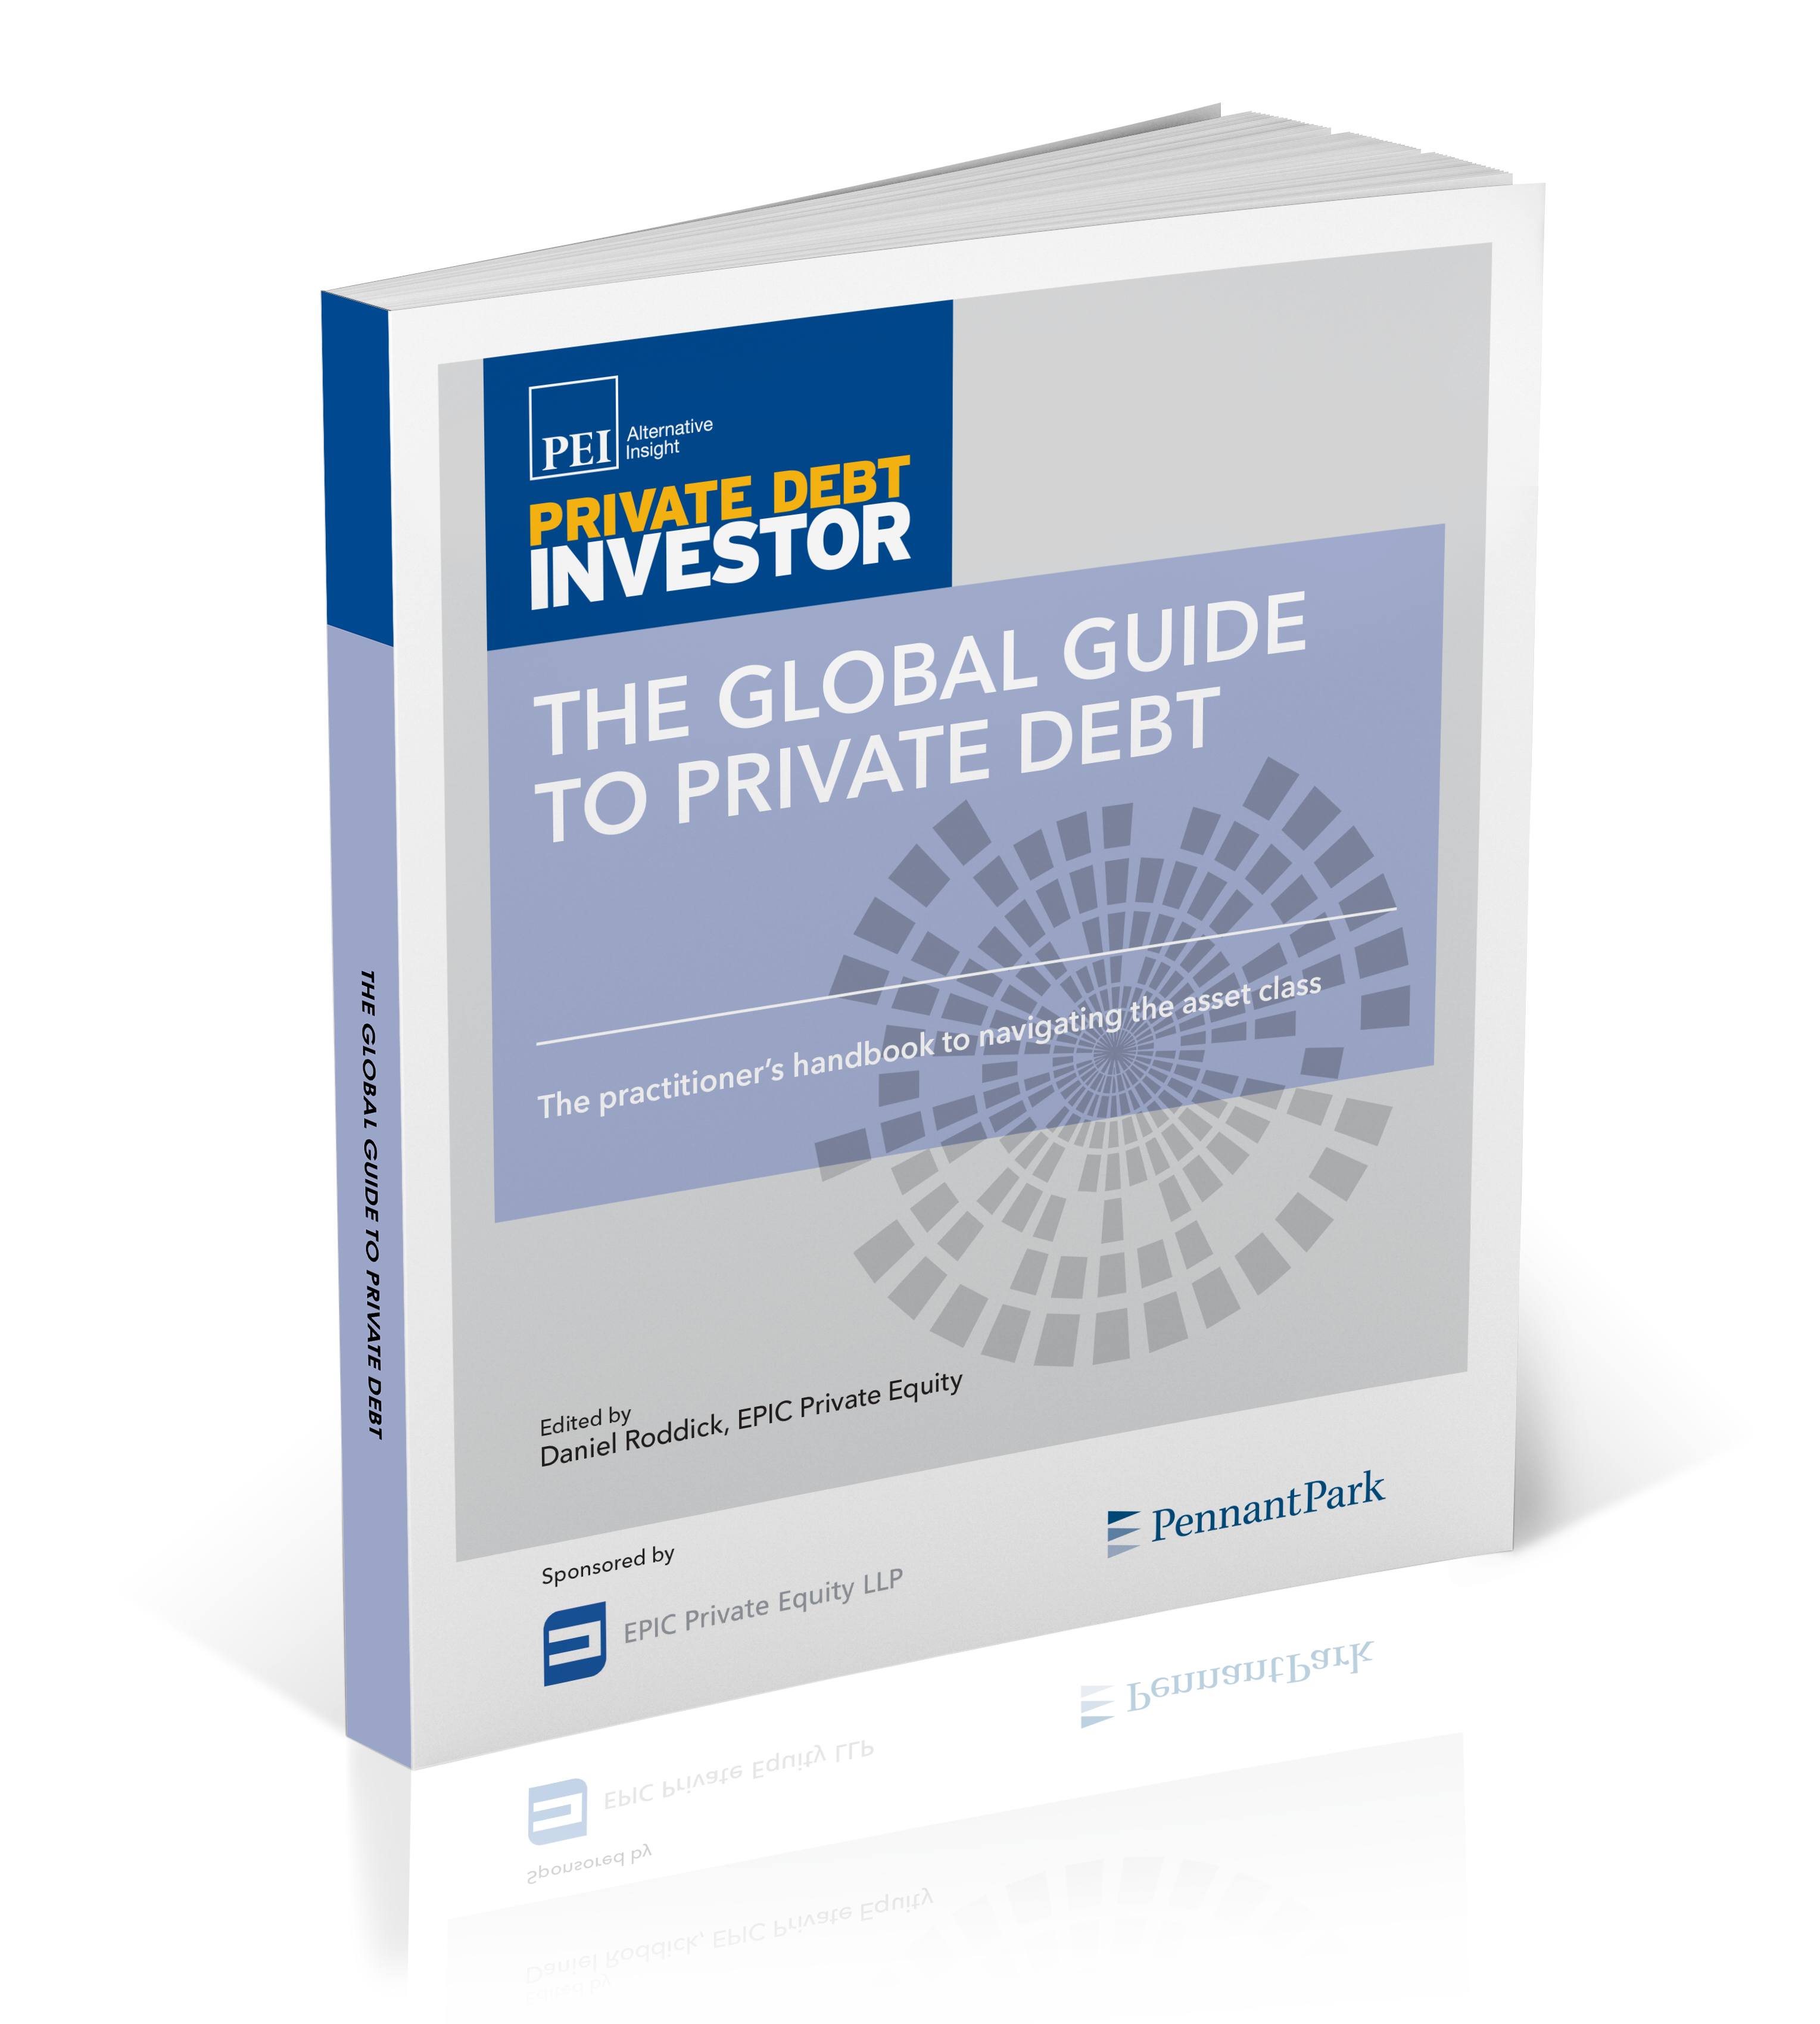 The Global Guide to Private Debt